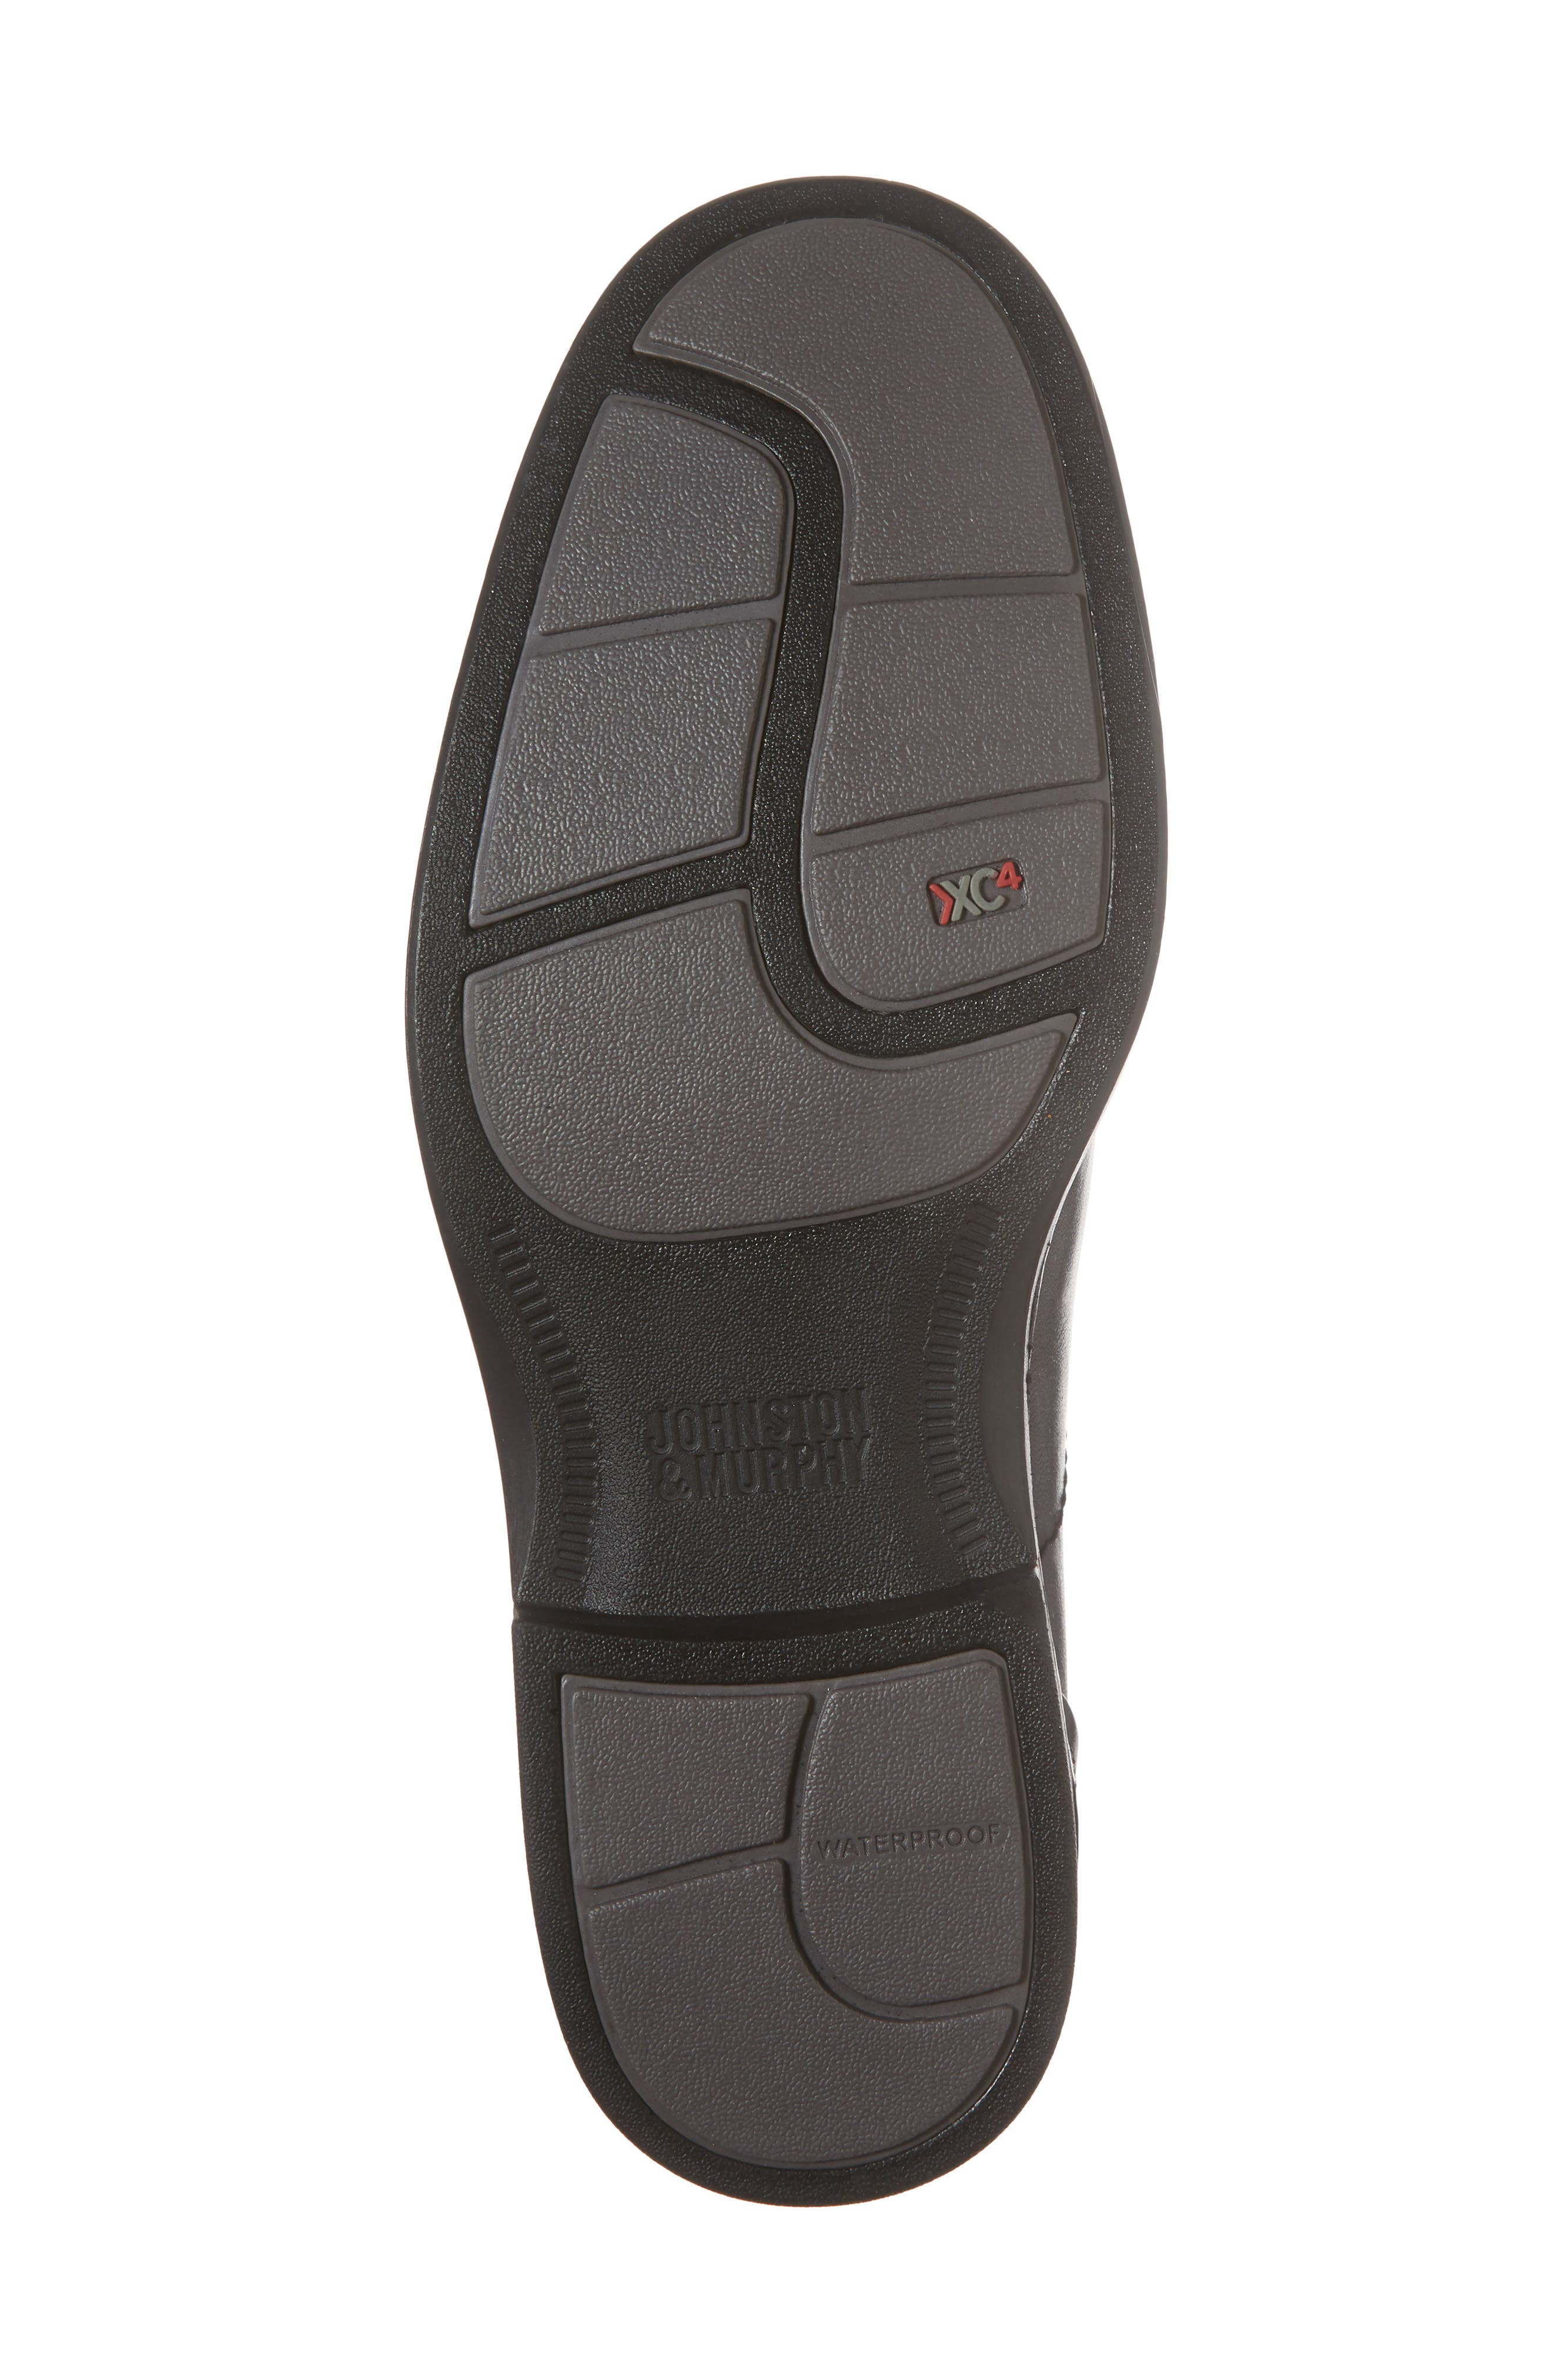 Stanton Runoff XC4<sup>®</sup> Waterproof Bike Toe Slip-On,                             Alternate thumbnail 6, color,                             BLACK LEATHER